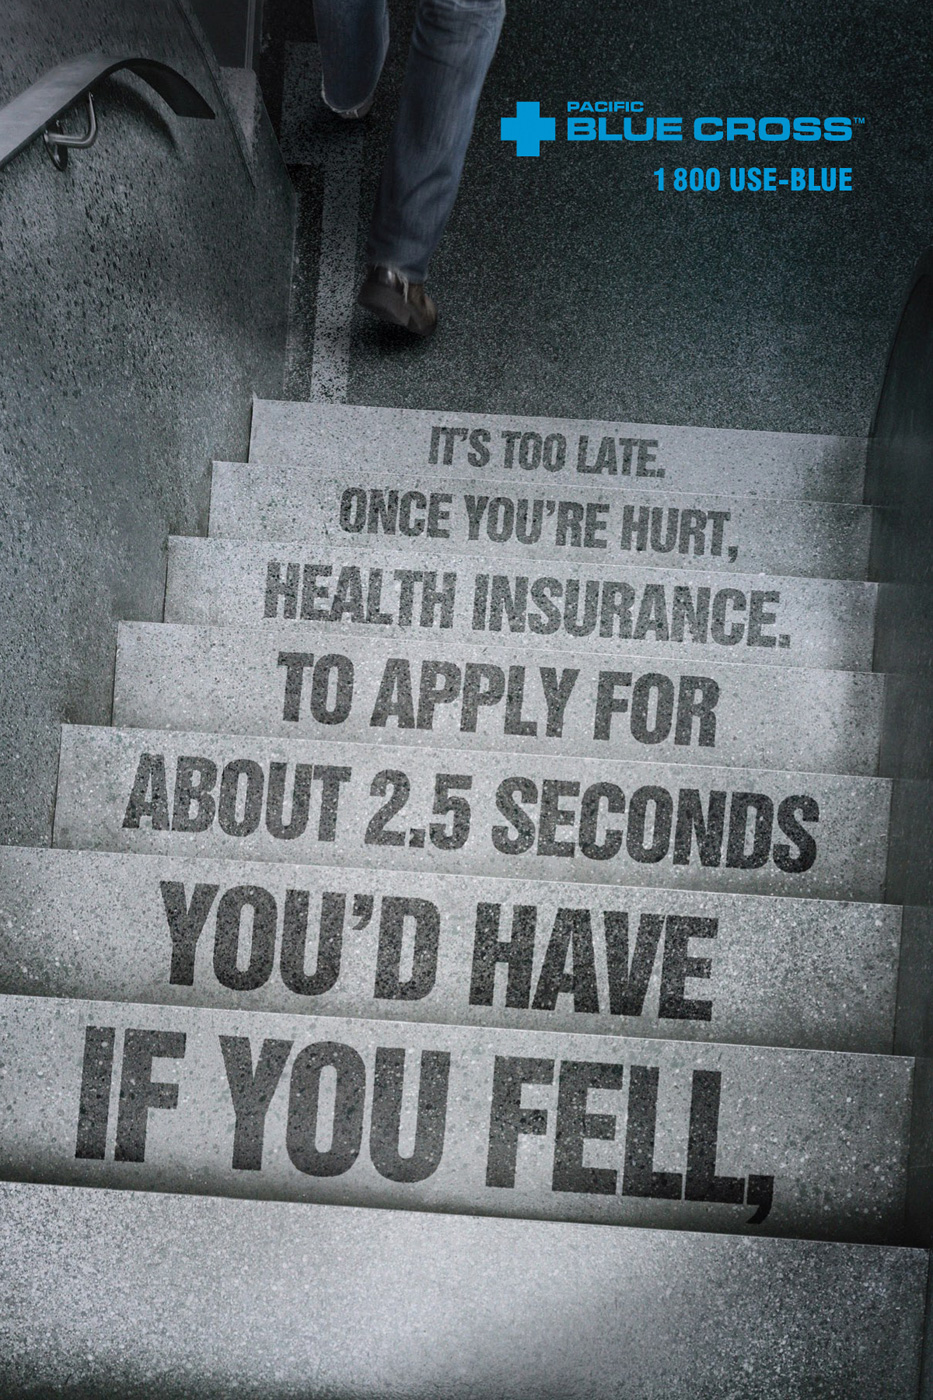 Blue Cross Health Insurance Quotes Pacific Blue Cross Print Advertddb Stairs  Ads Of The World™